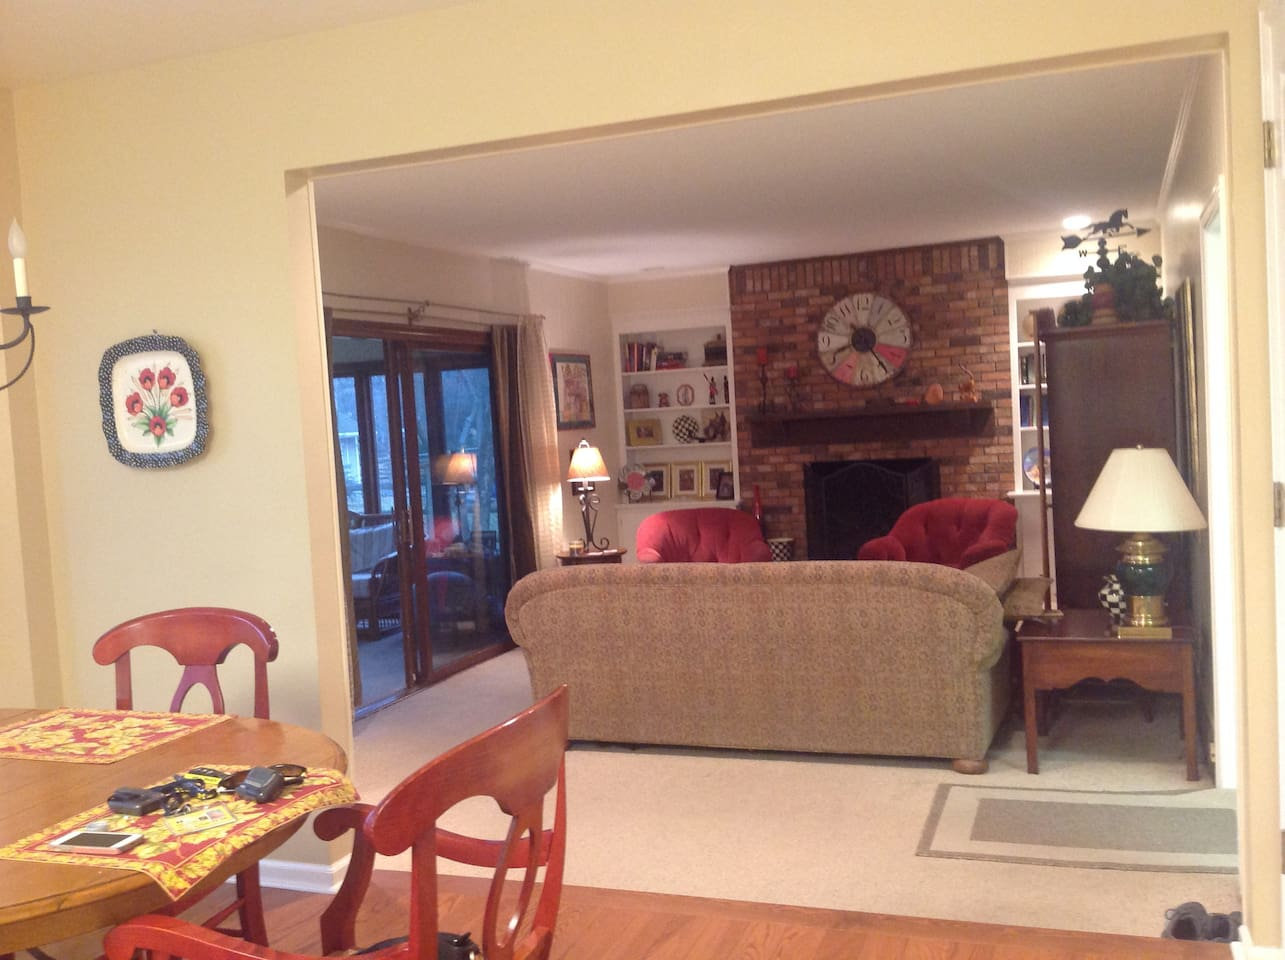 Family room, shared space